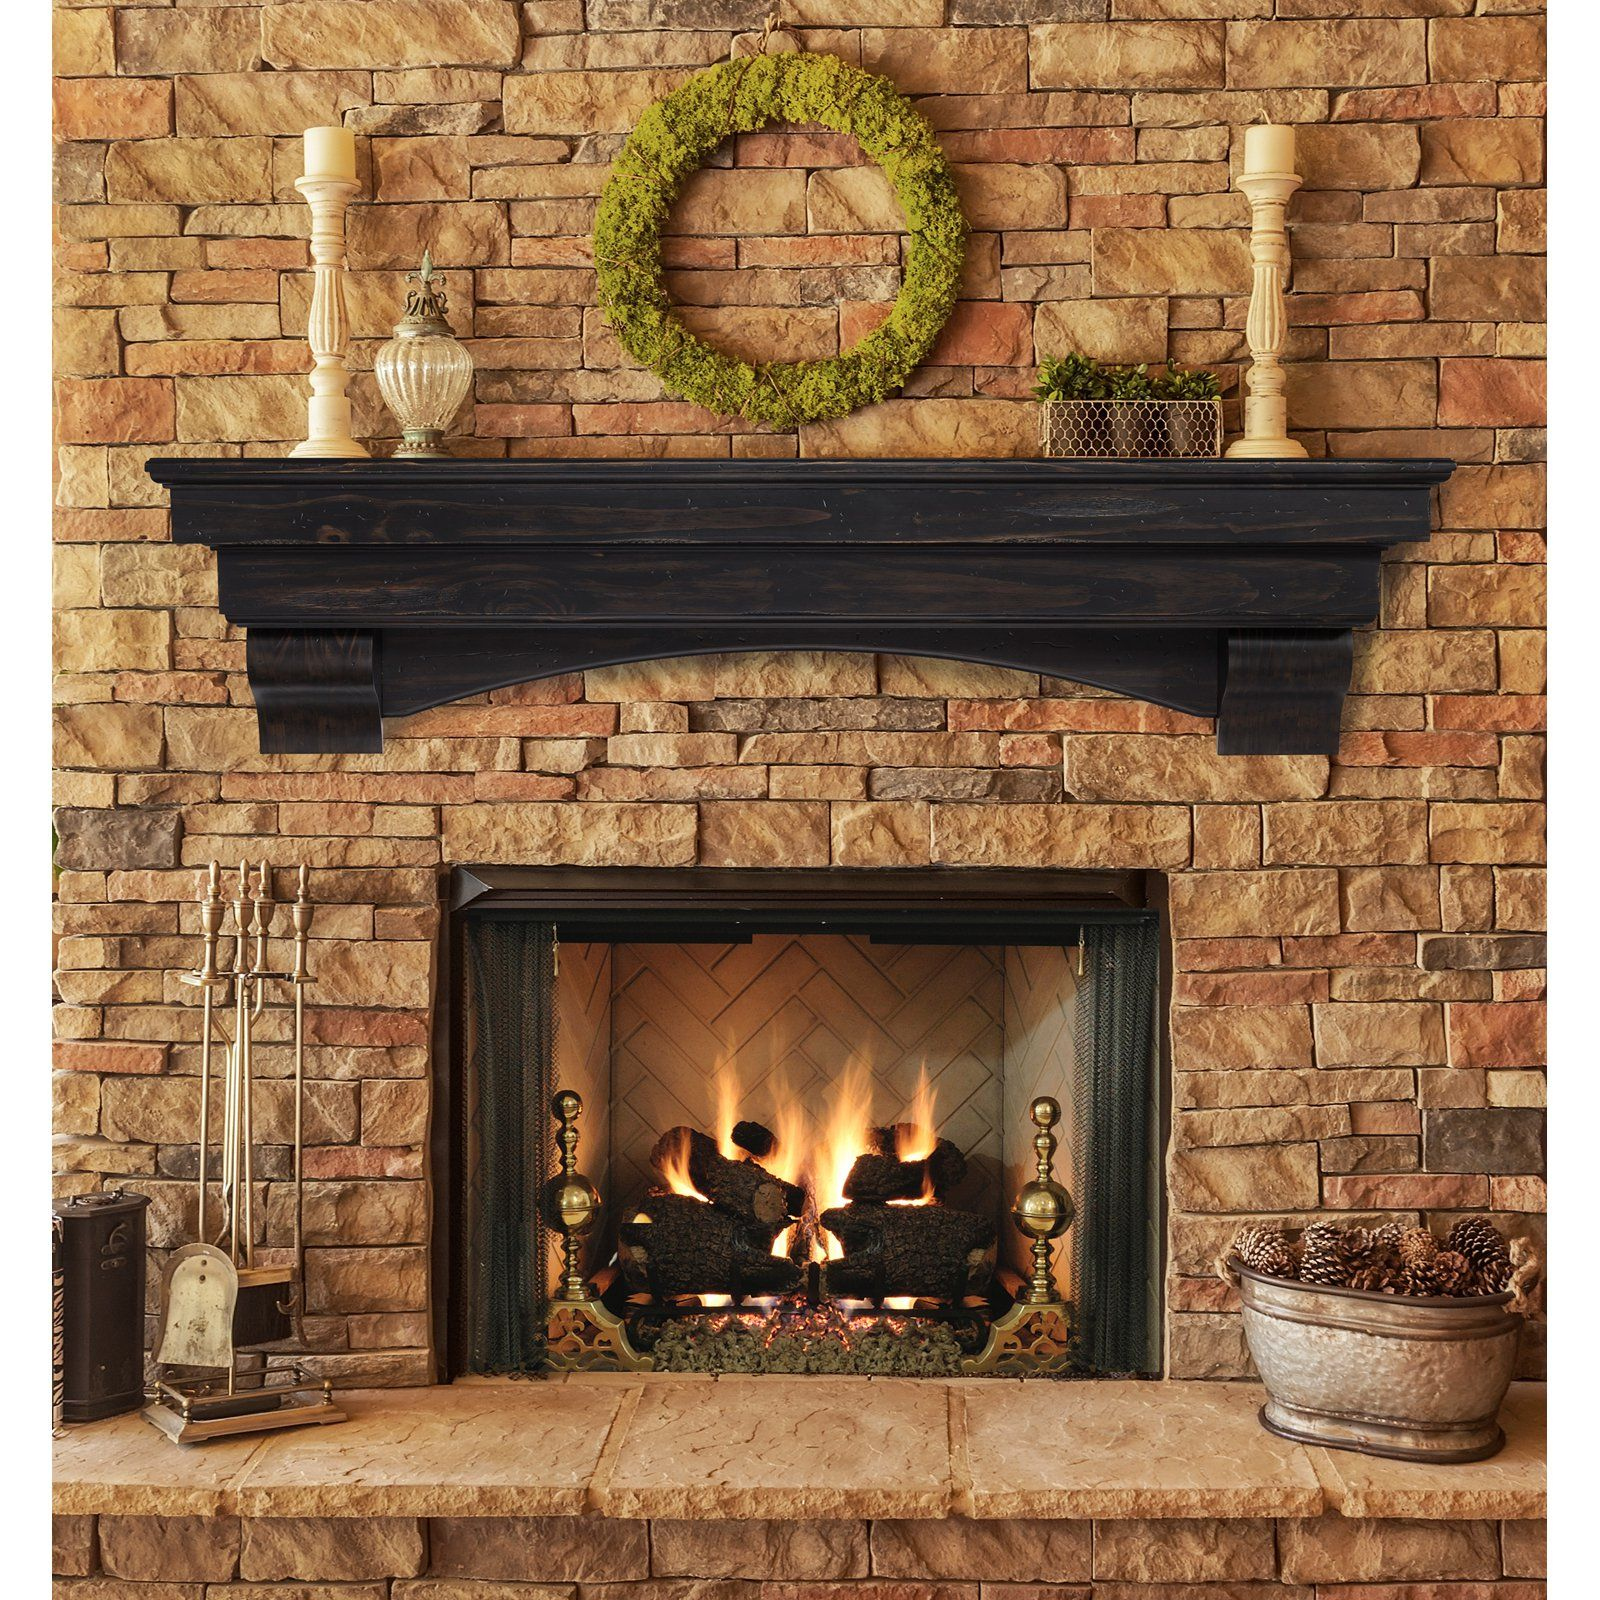 Pearl mantels celeste fireplace mantel shelf the pearl Decorative hearth